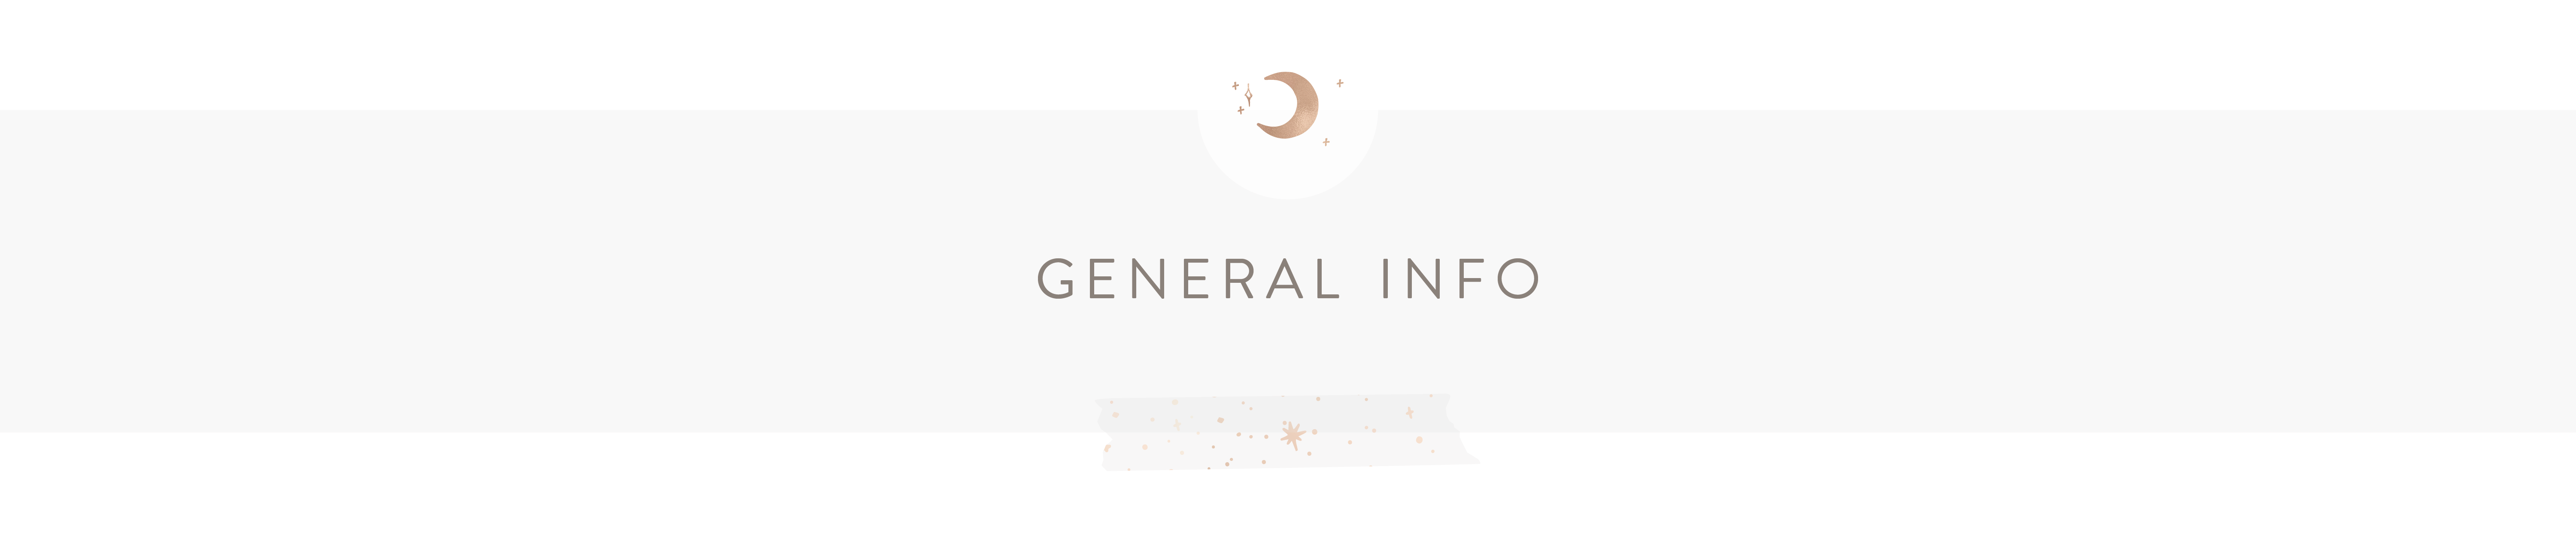 General Info : By the Moon - Inspiration Cards & Displays